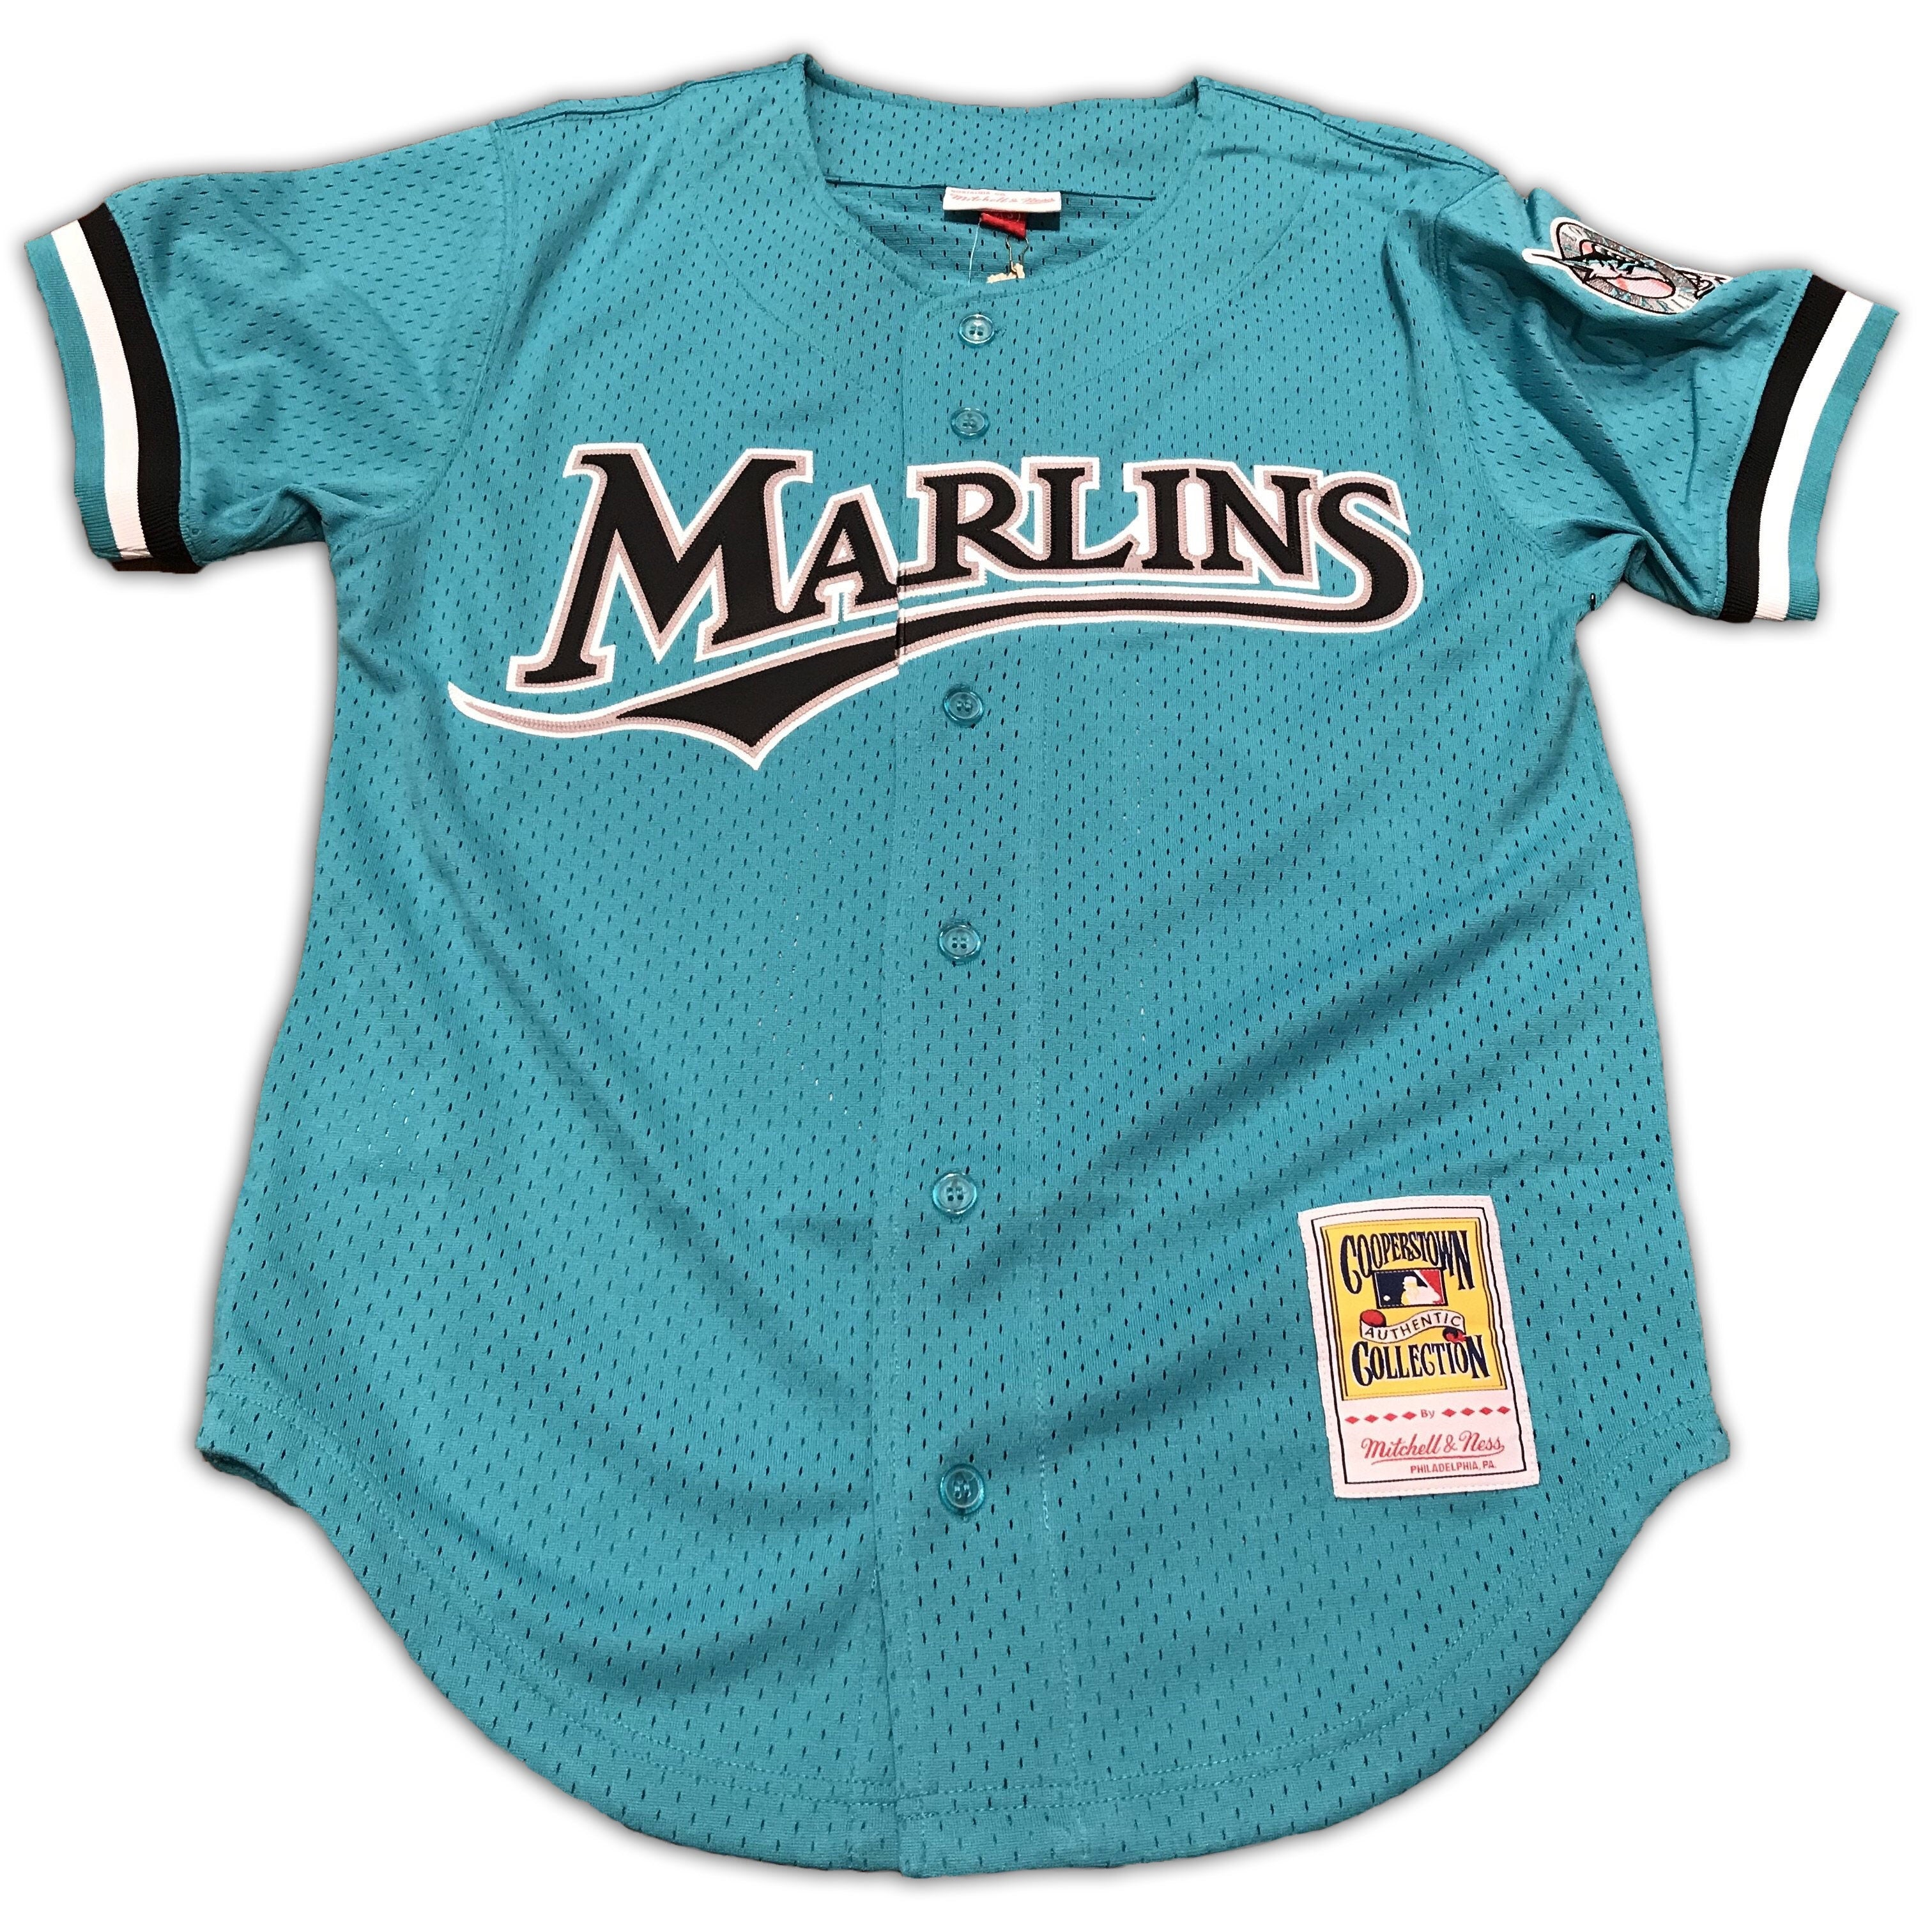 MITCHELL AND NESS JERSEY 7339AMARLIN